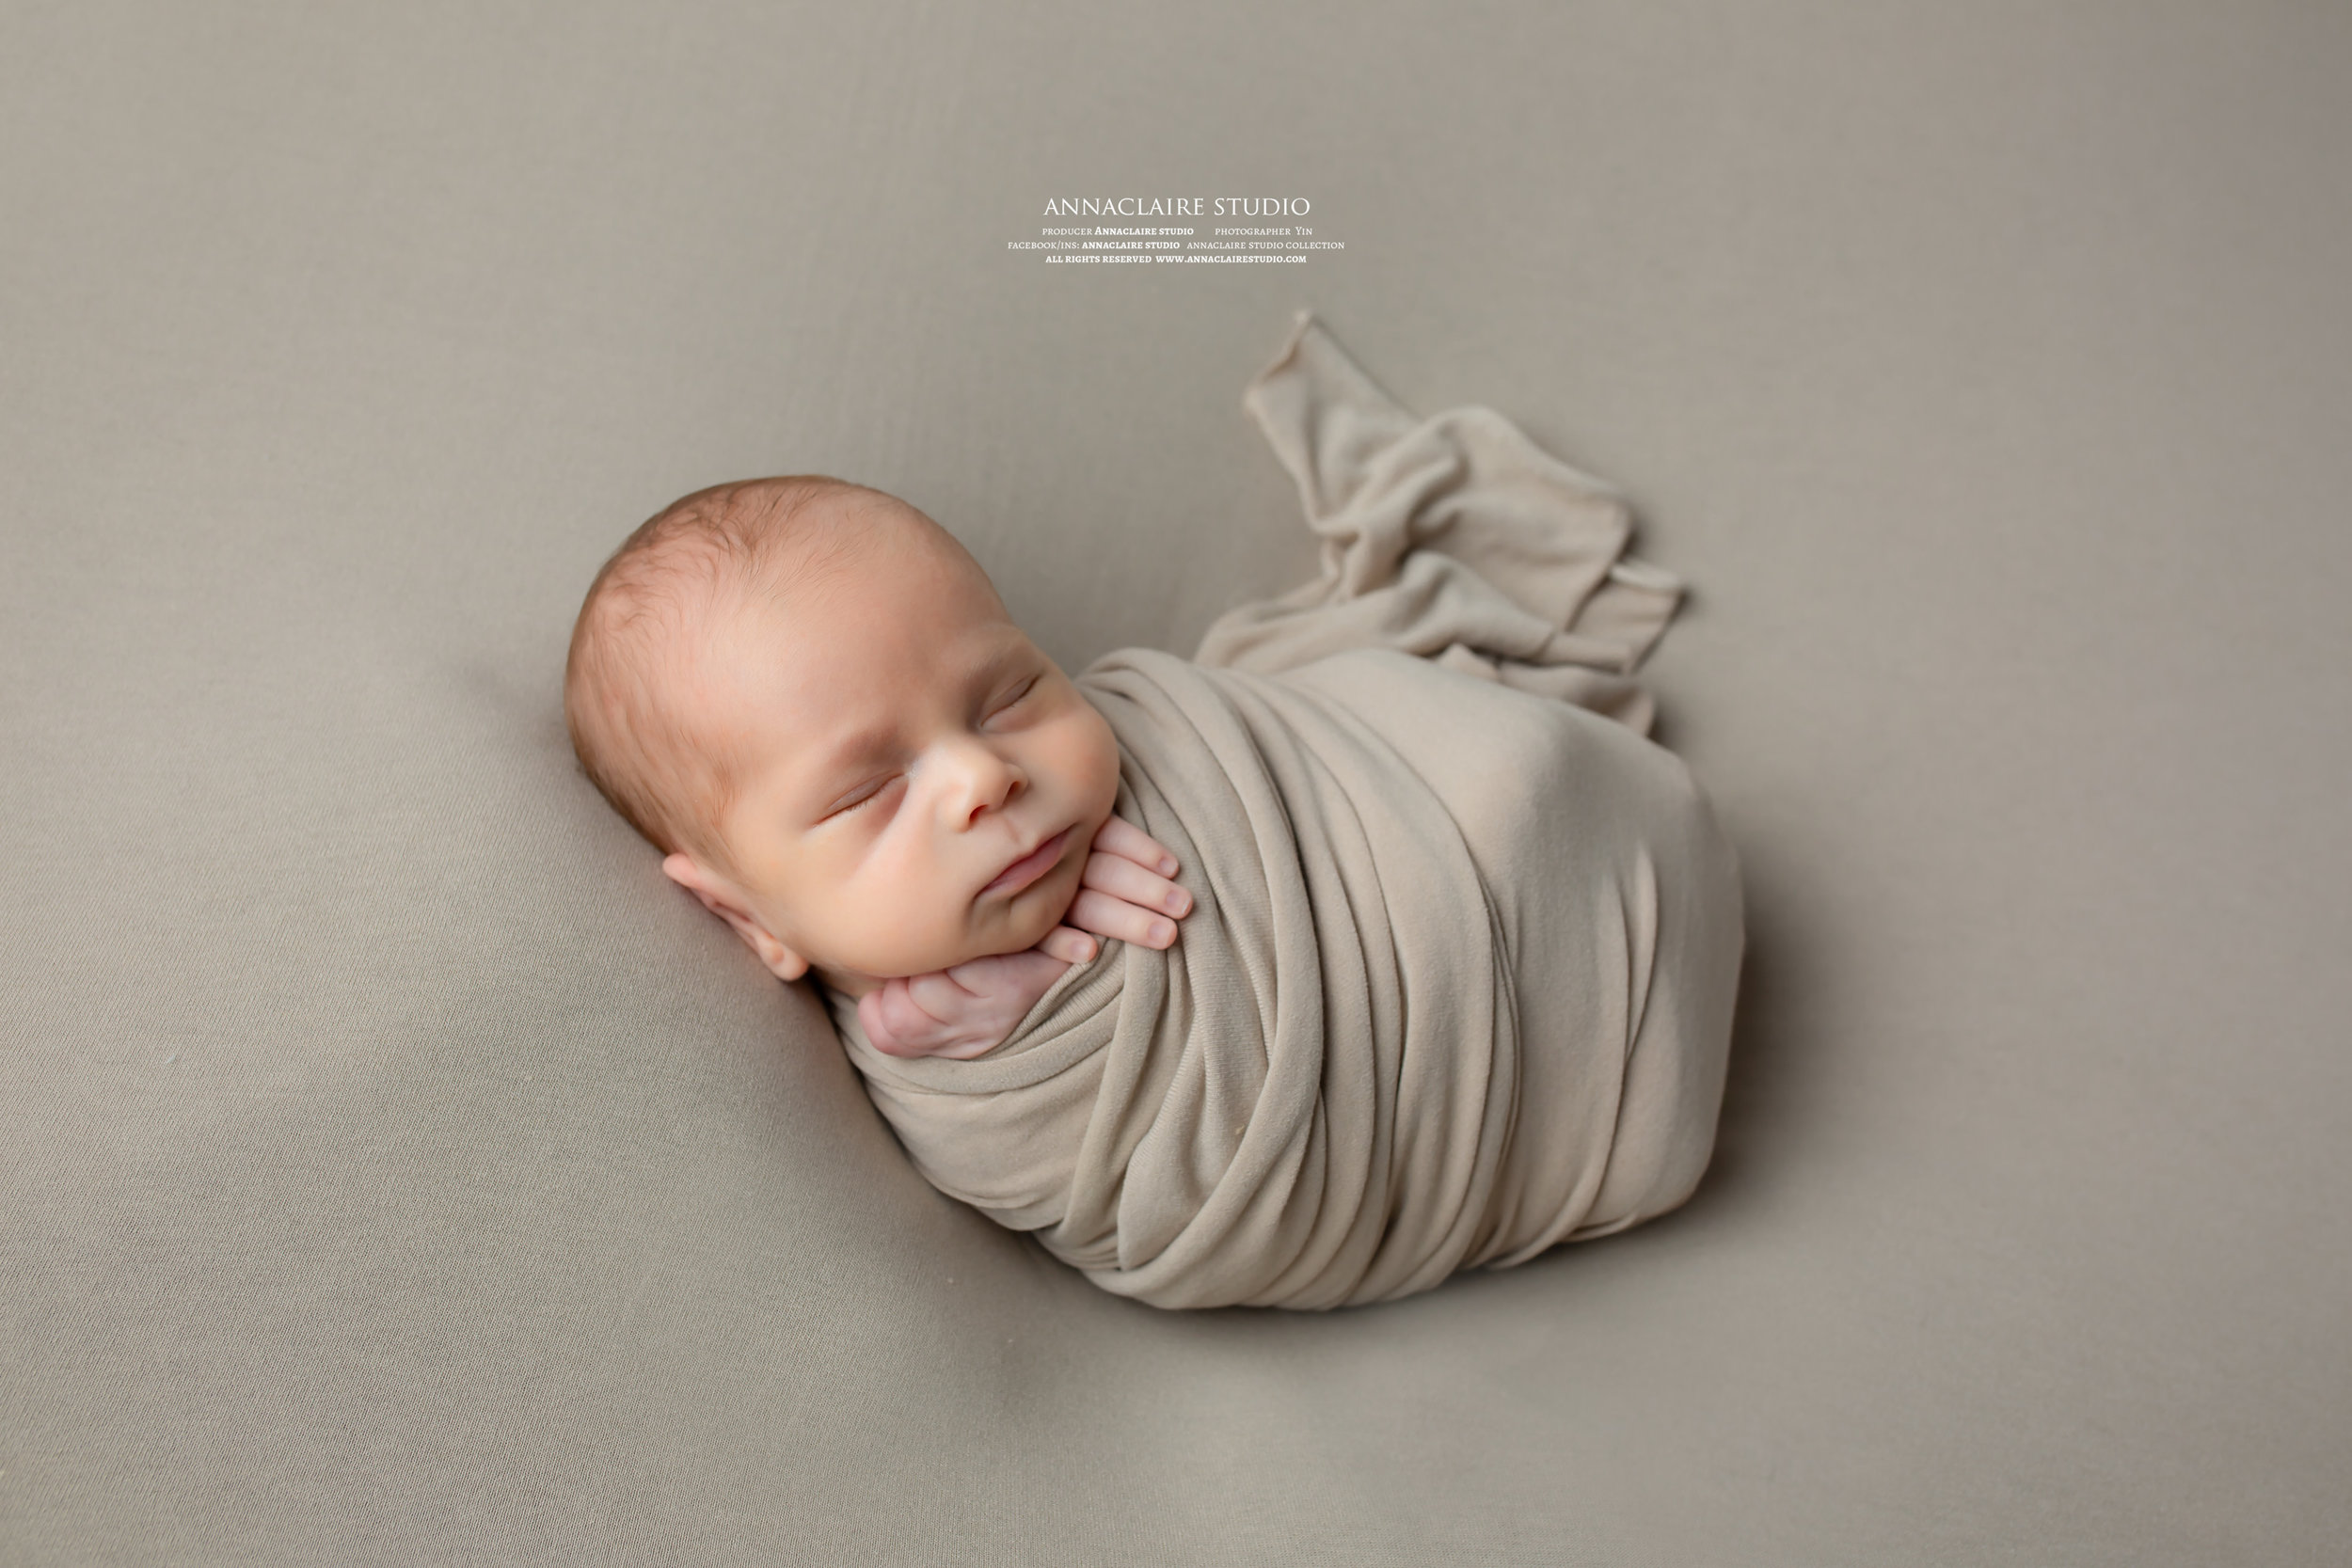 newborn photo by annaclaire studio 悉尼新生儿摄影 (1 of 1) (2).jpg